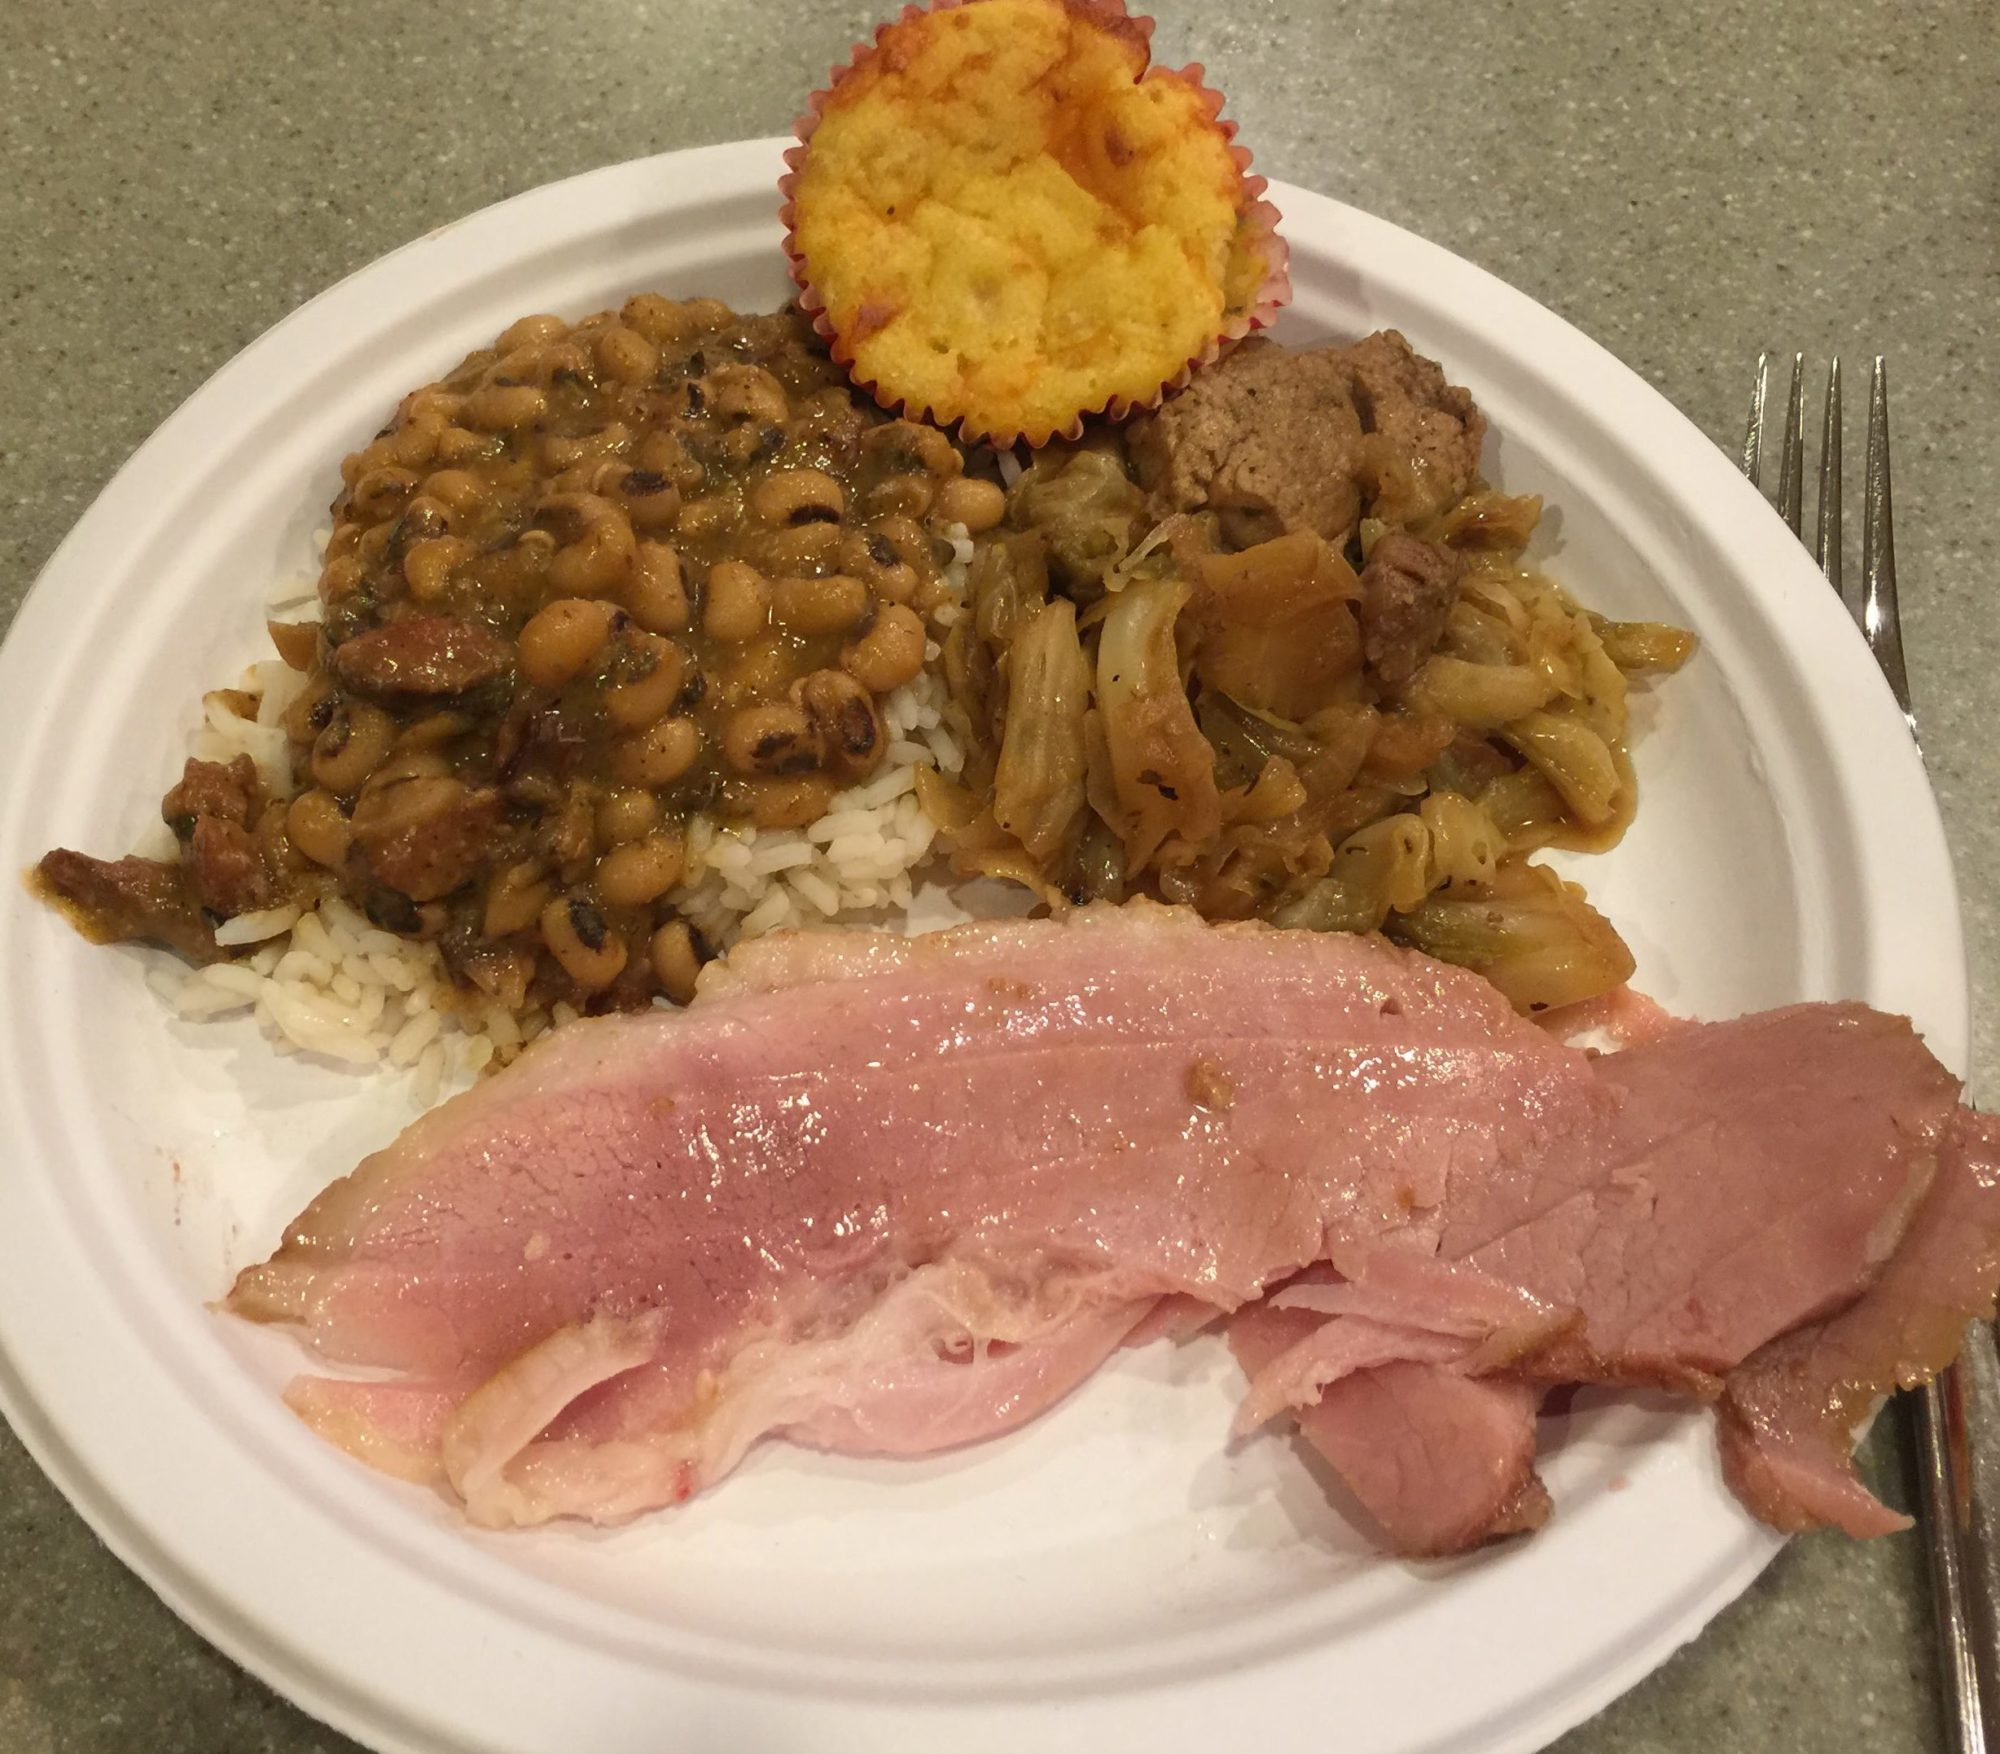 Black eye peas with ham and cabbage